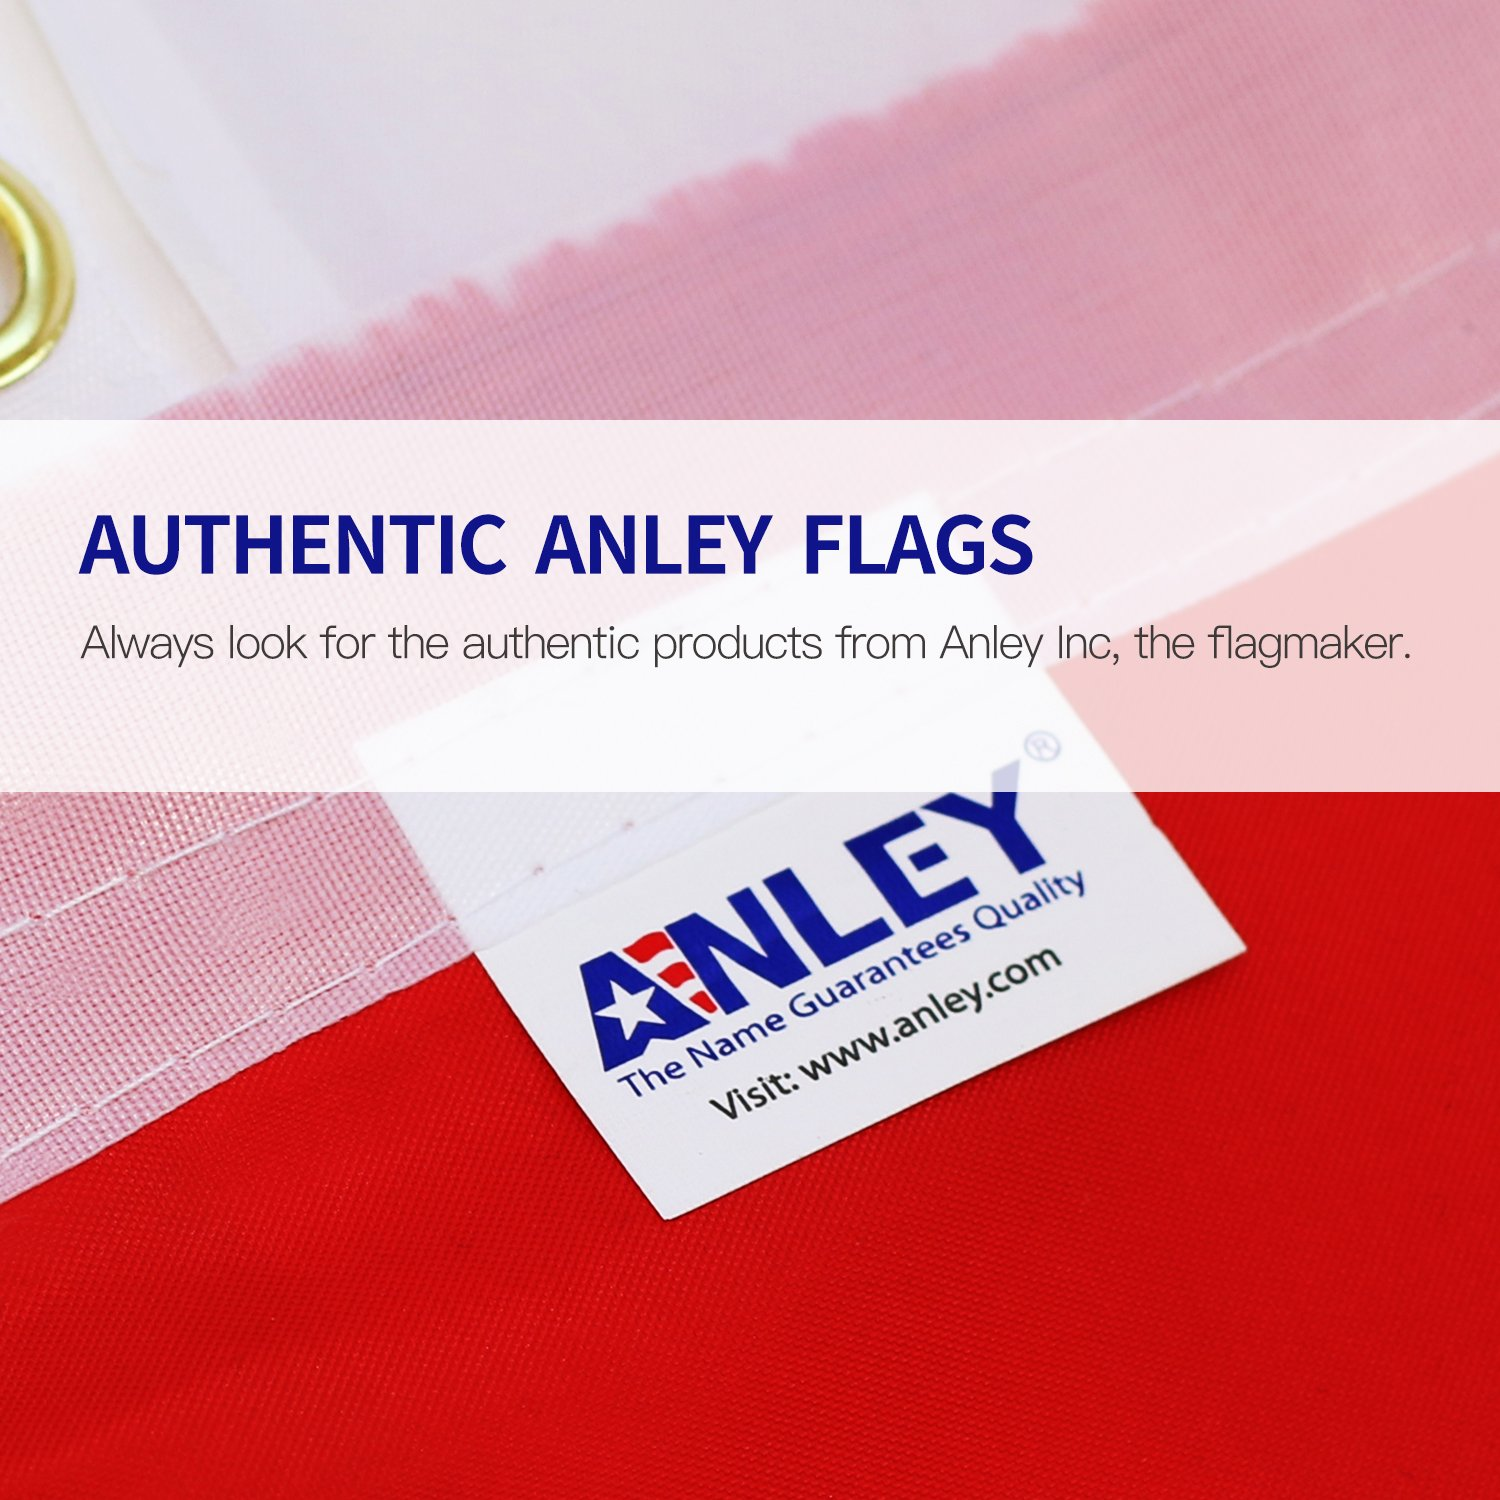 Cold Beer Flag Anley Canvas Header and Double Stitched 90 X 150cm Advertising Beer Flags Polyester with Brass Grommets 3 X 5 Ft Vivid Color and UV Fade Resistant Fly Breeze 3x5 Foot